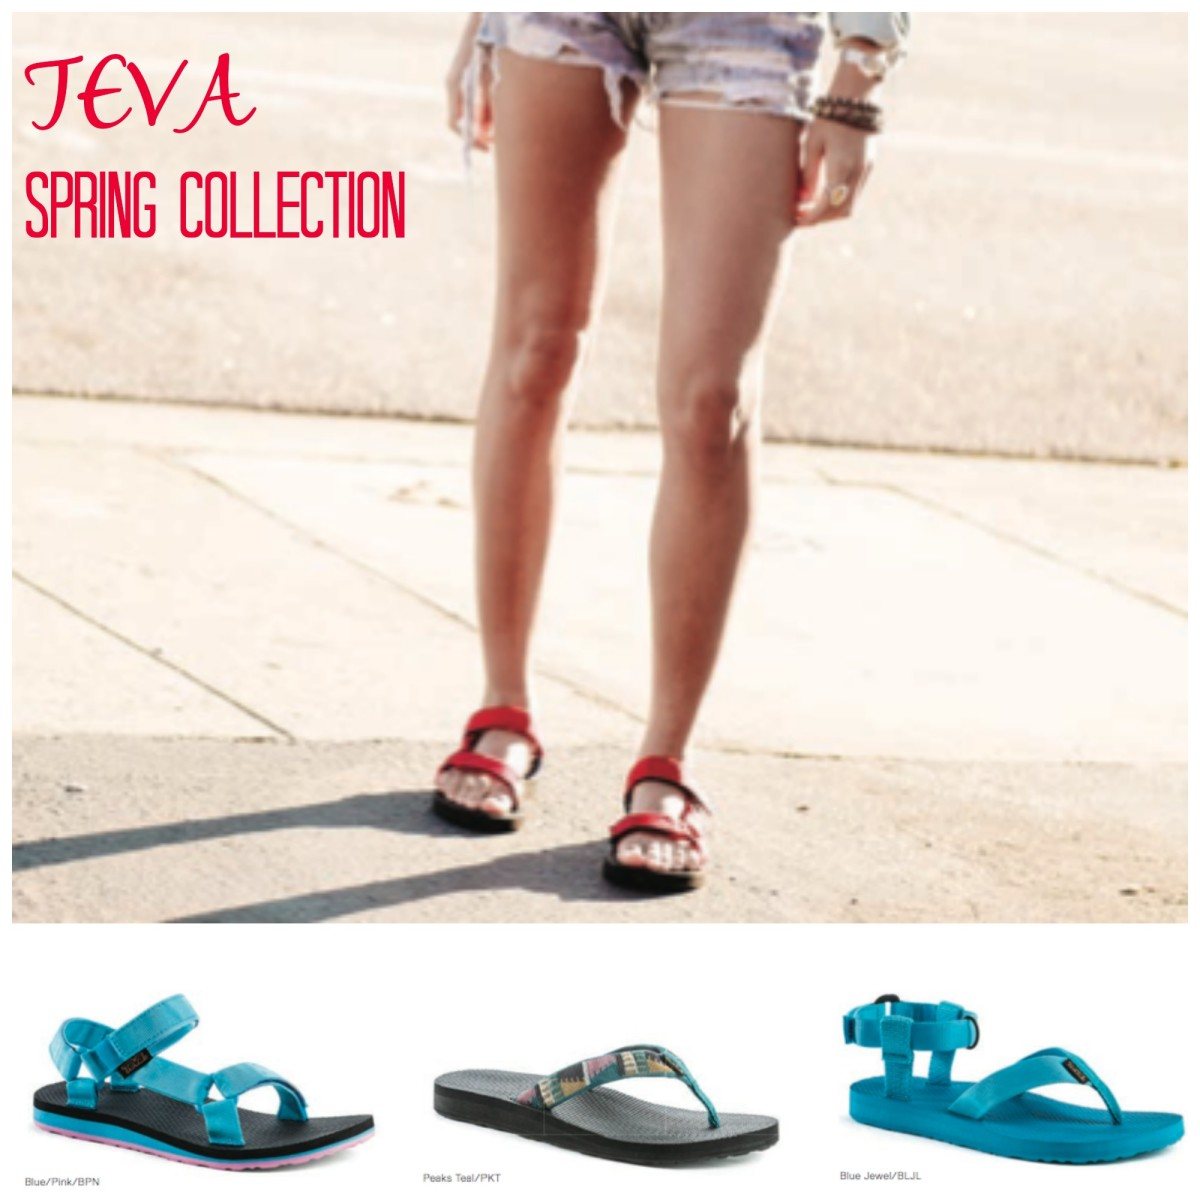 TEVA spring collection